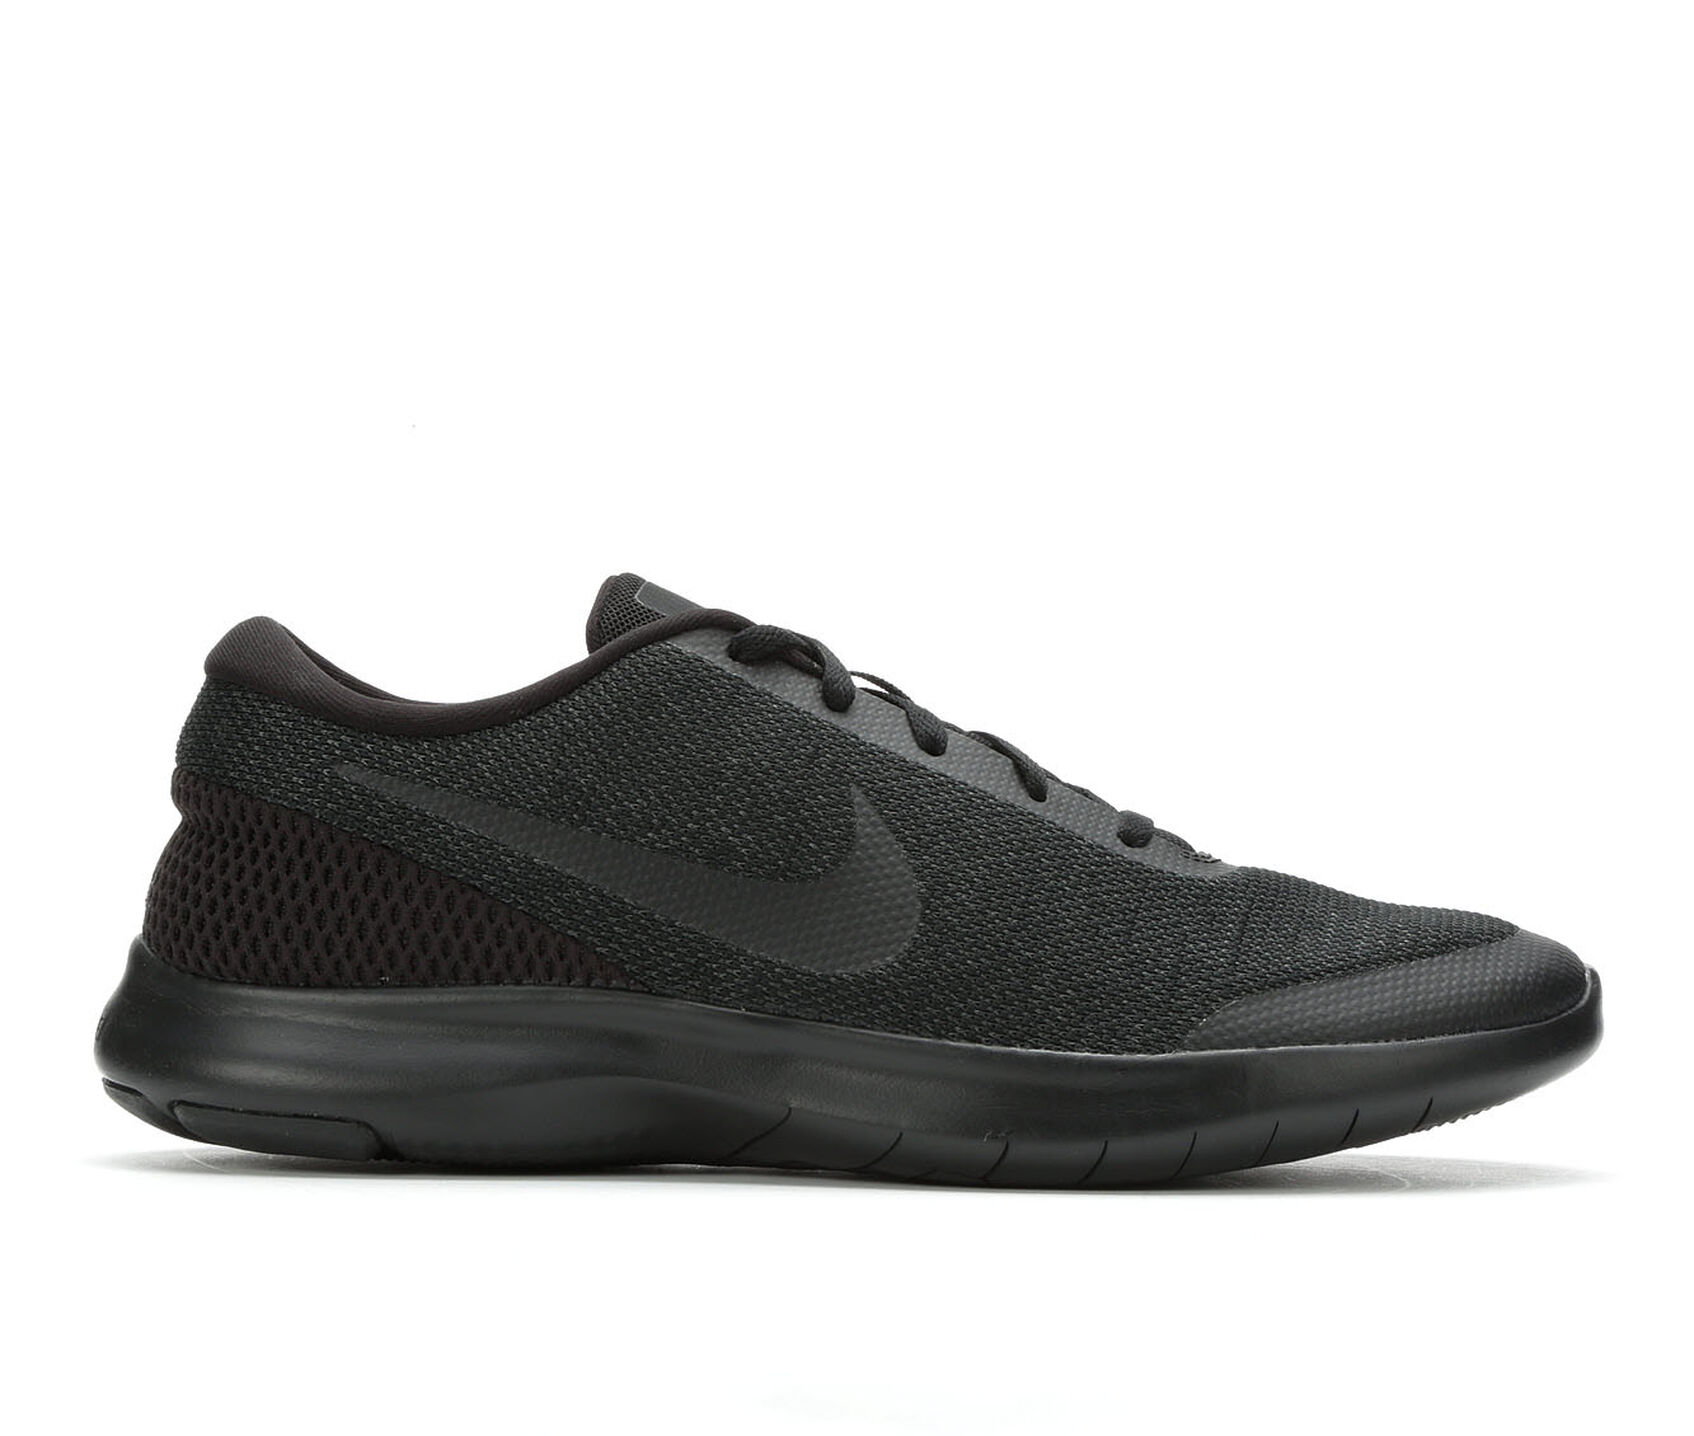 3223becfd12c48 ... Nike Flex Experience Run 7 Running Shoes. Previous